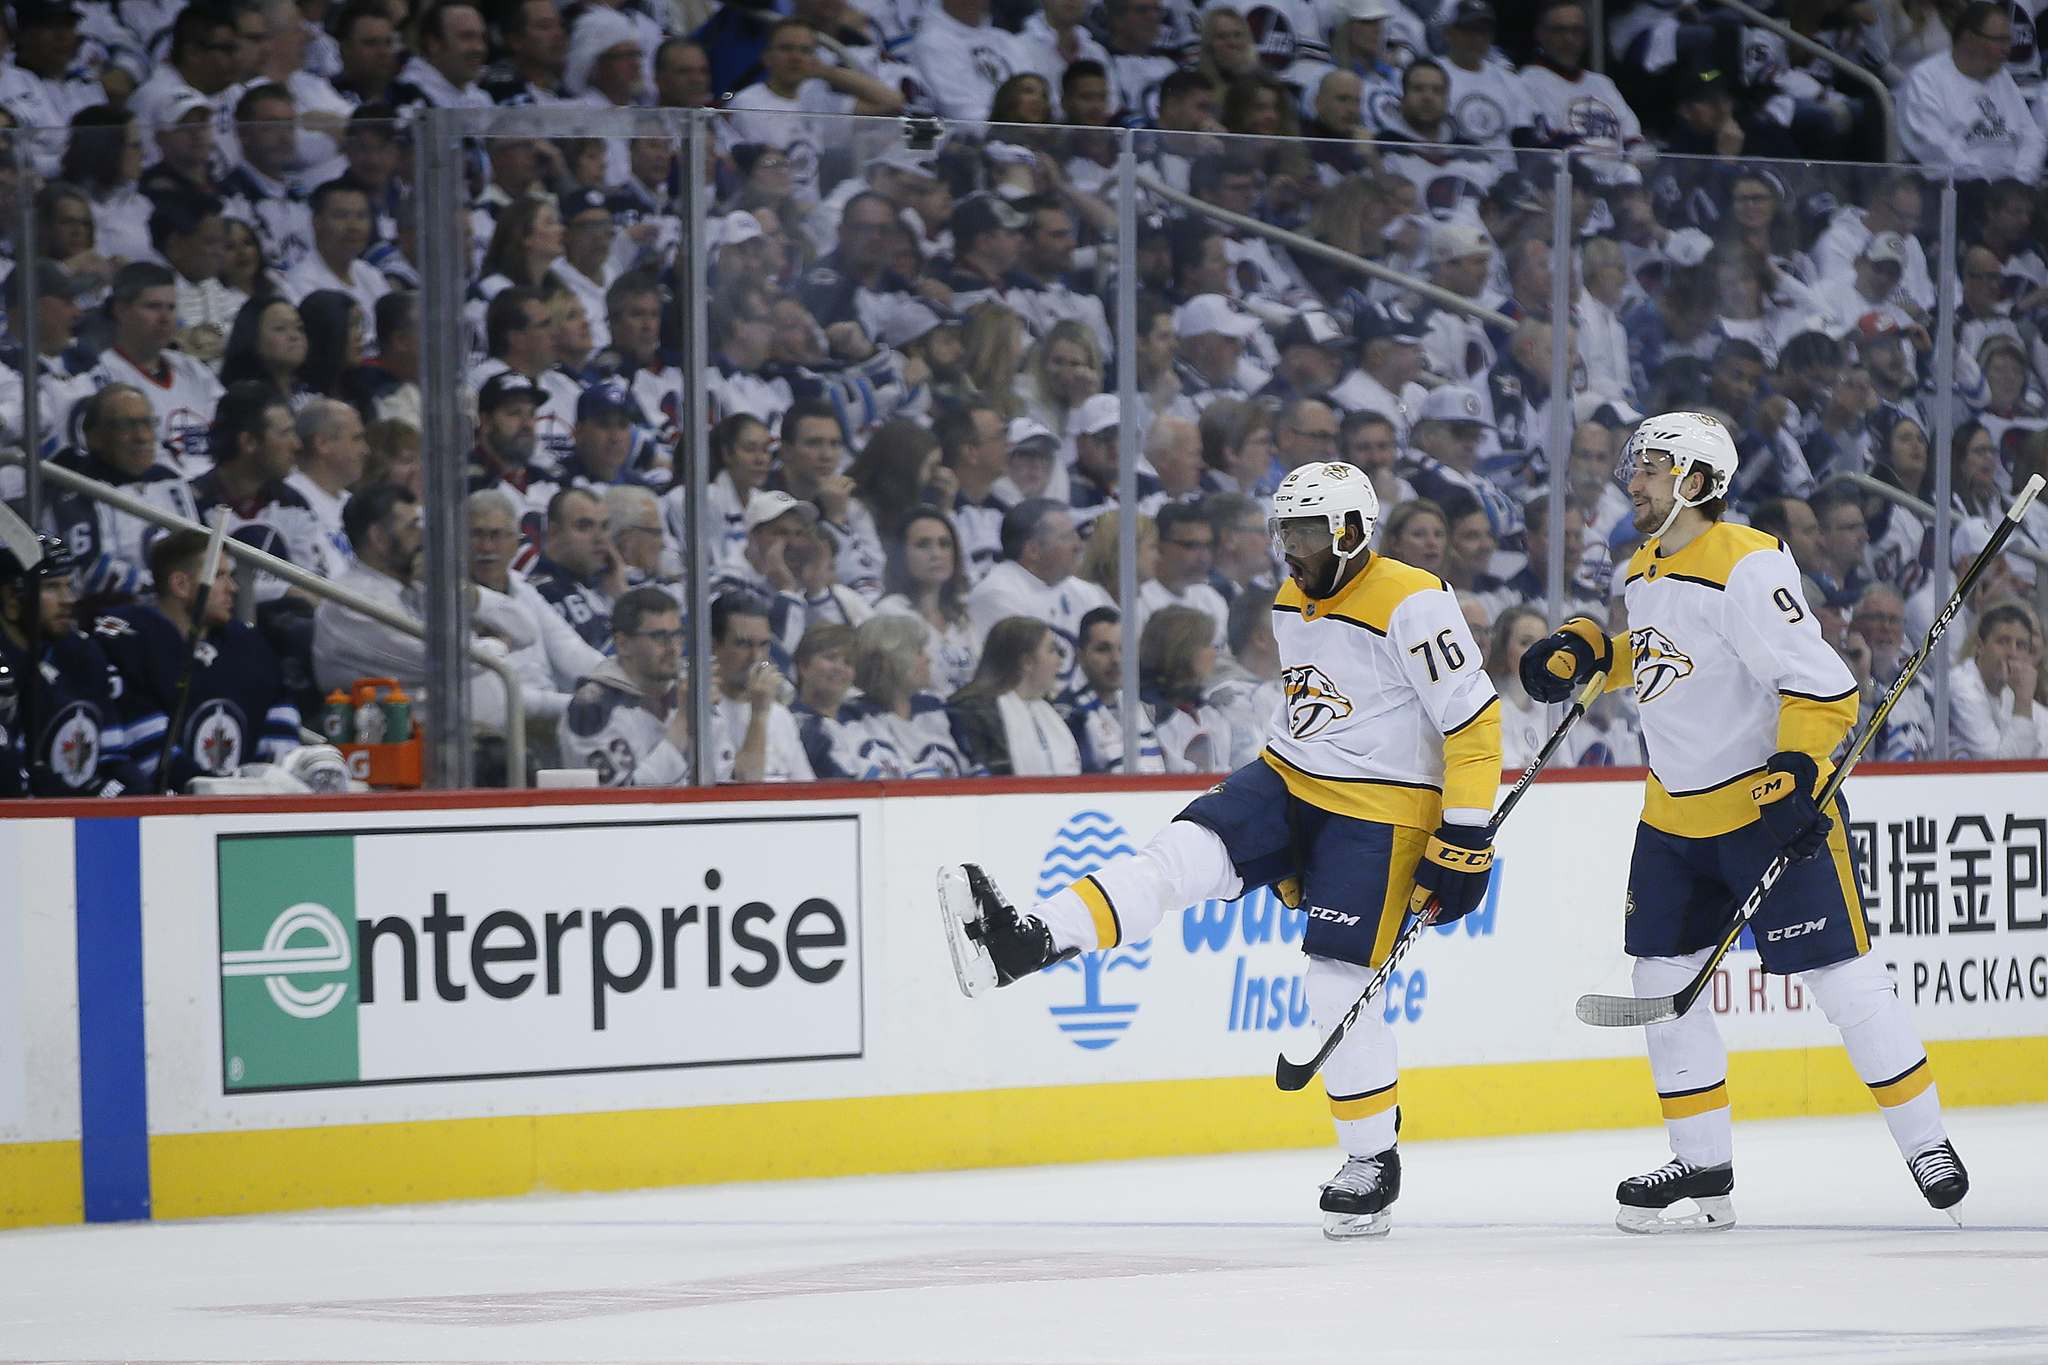 John Woods / Winnipeg Free Press</p><p>Nashville Predators' P.K. Subban and Filip Forsberg celebrate Subban's goal against the Jets in the first period of playoff action in Winnipeg, Tuesday.</p>